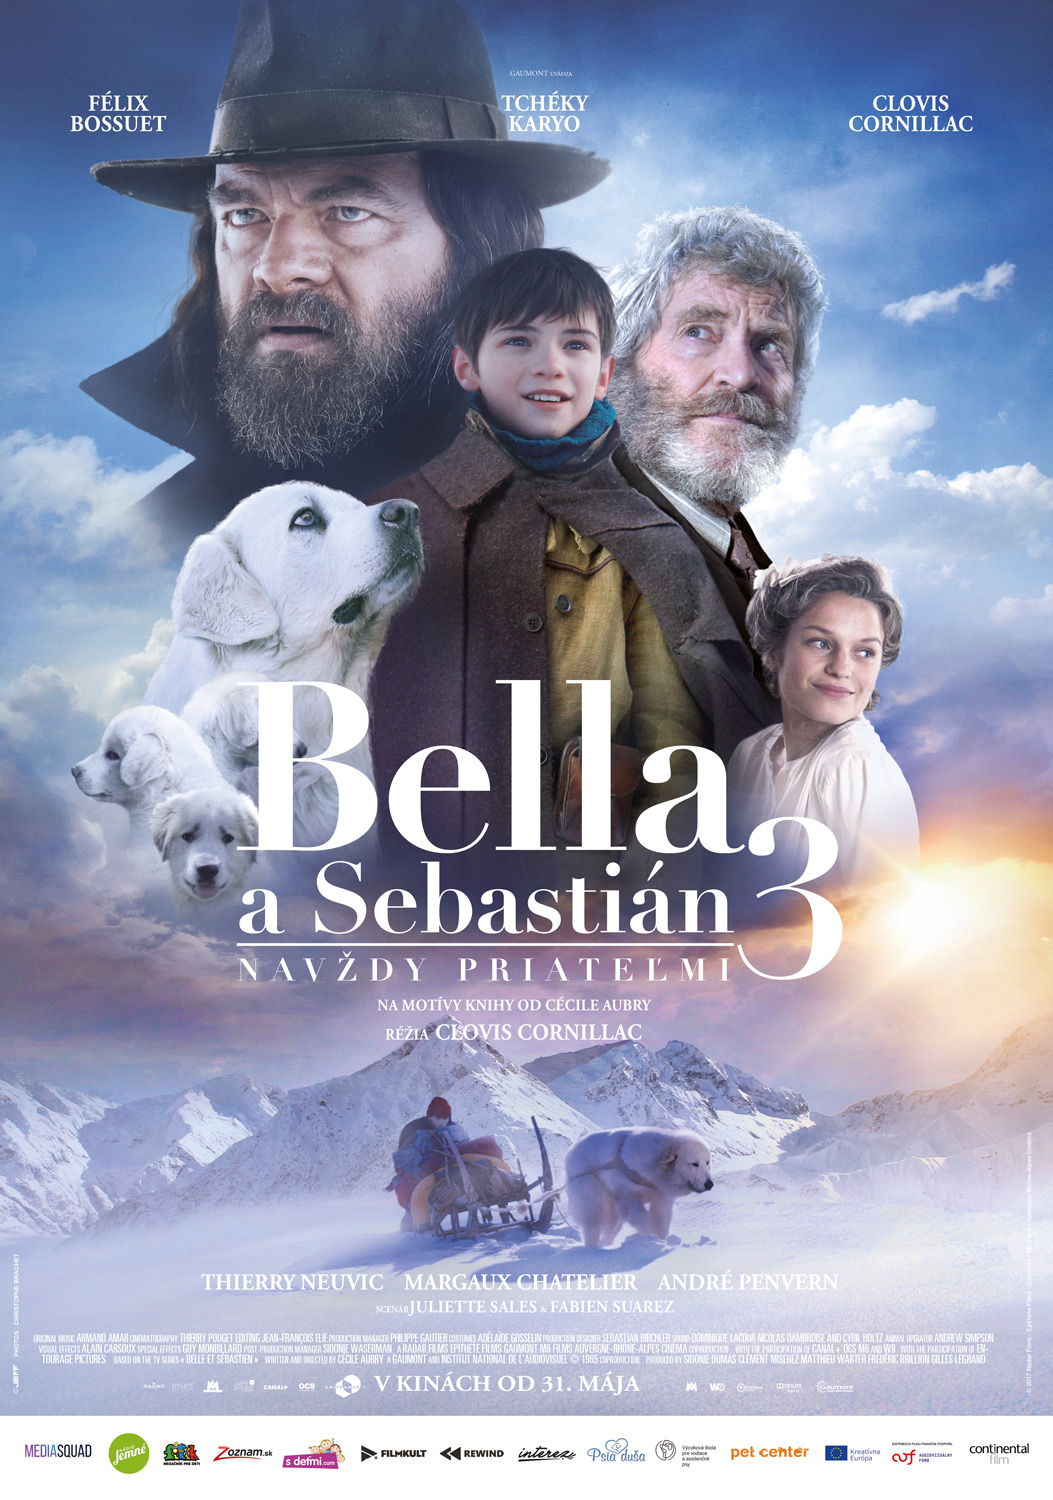 https://www.continental-film.sk/images/stories/postery/bella-a-sebastian-3-poster.jpg